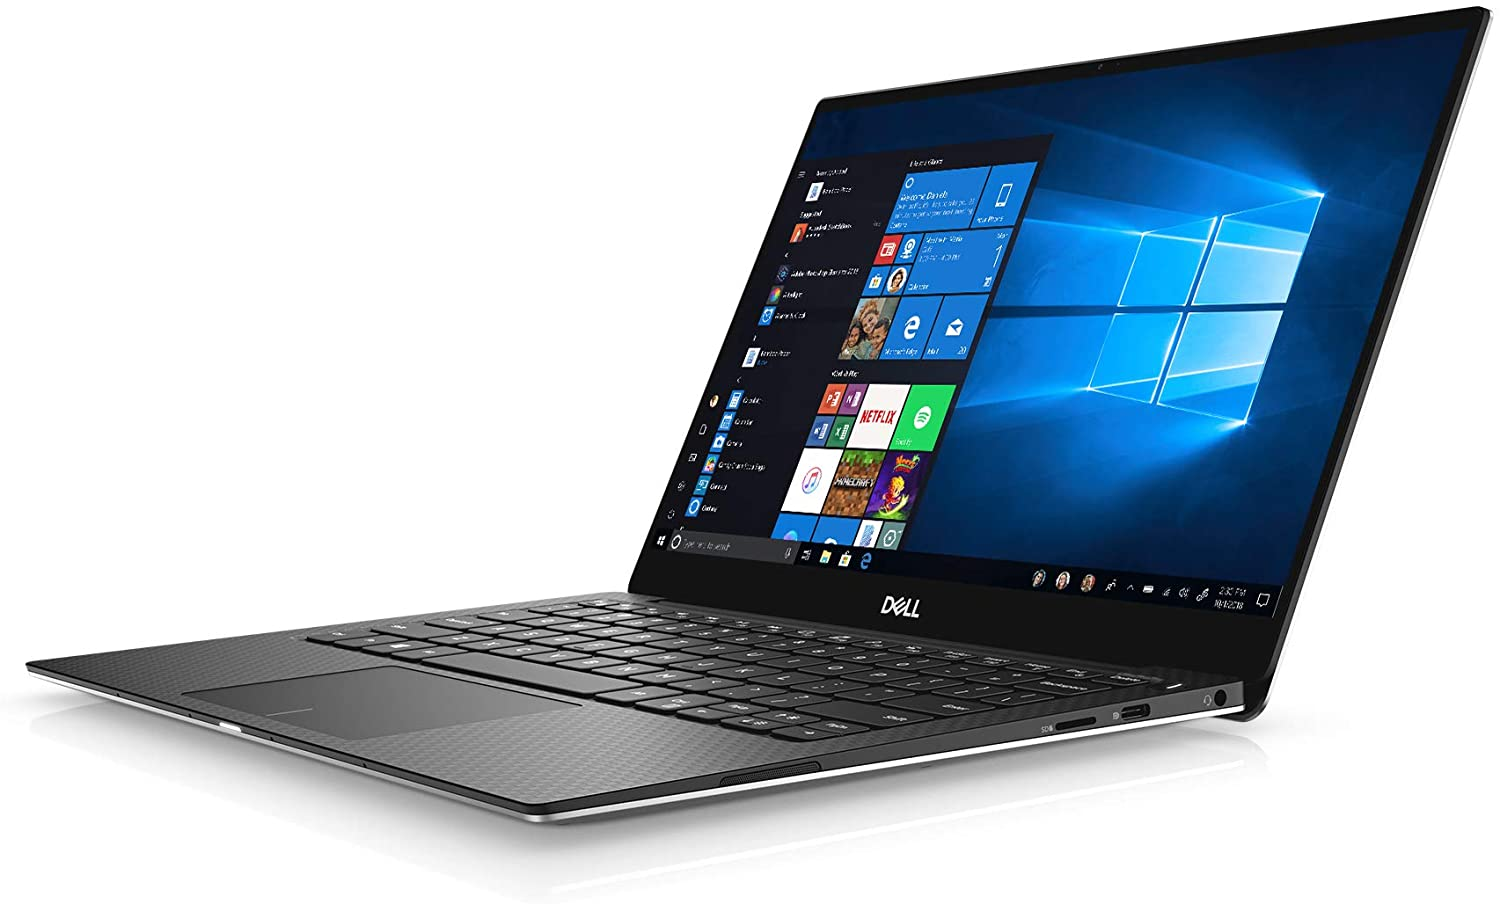 "Dell XPS 13 9380, XPS9380-7011SLV-PUS, 8th Generation Intel Core i7-8565U, 13.3"" 4K Ultra HD (3840x2160), 8GB 2133MHz, 512 SSD, Intel UHD Graphics 620"